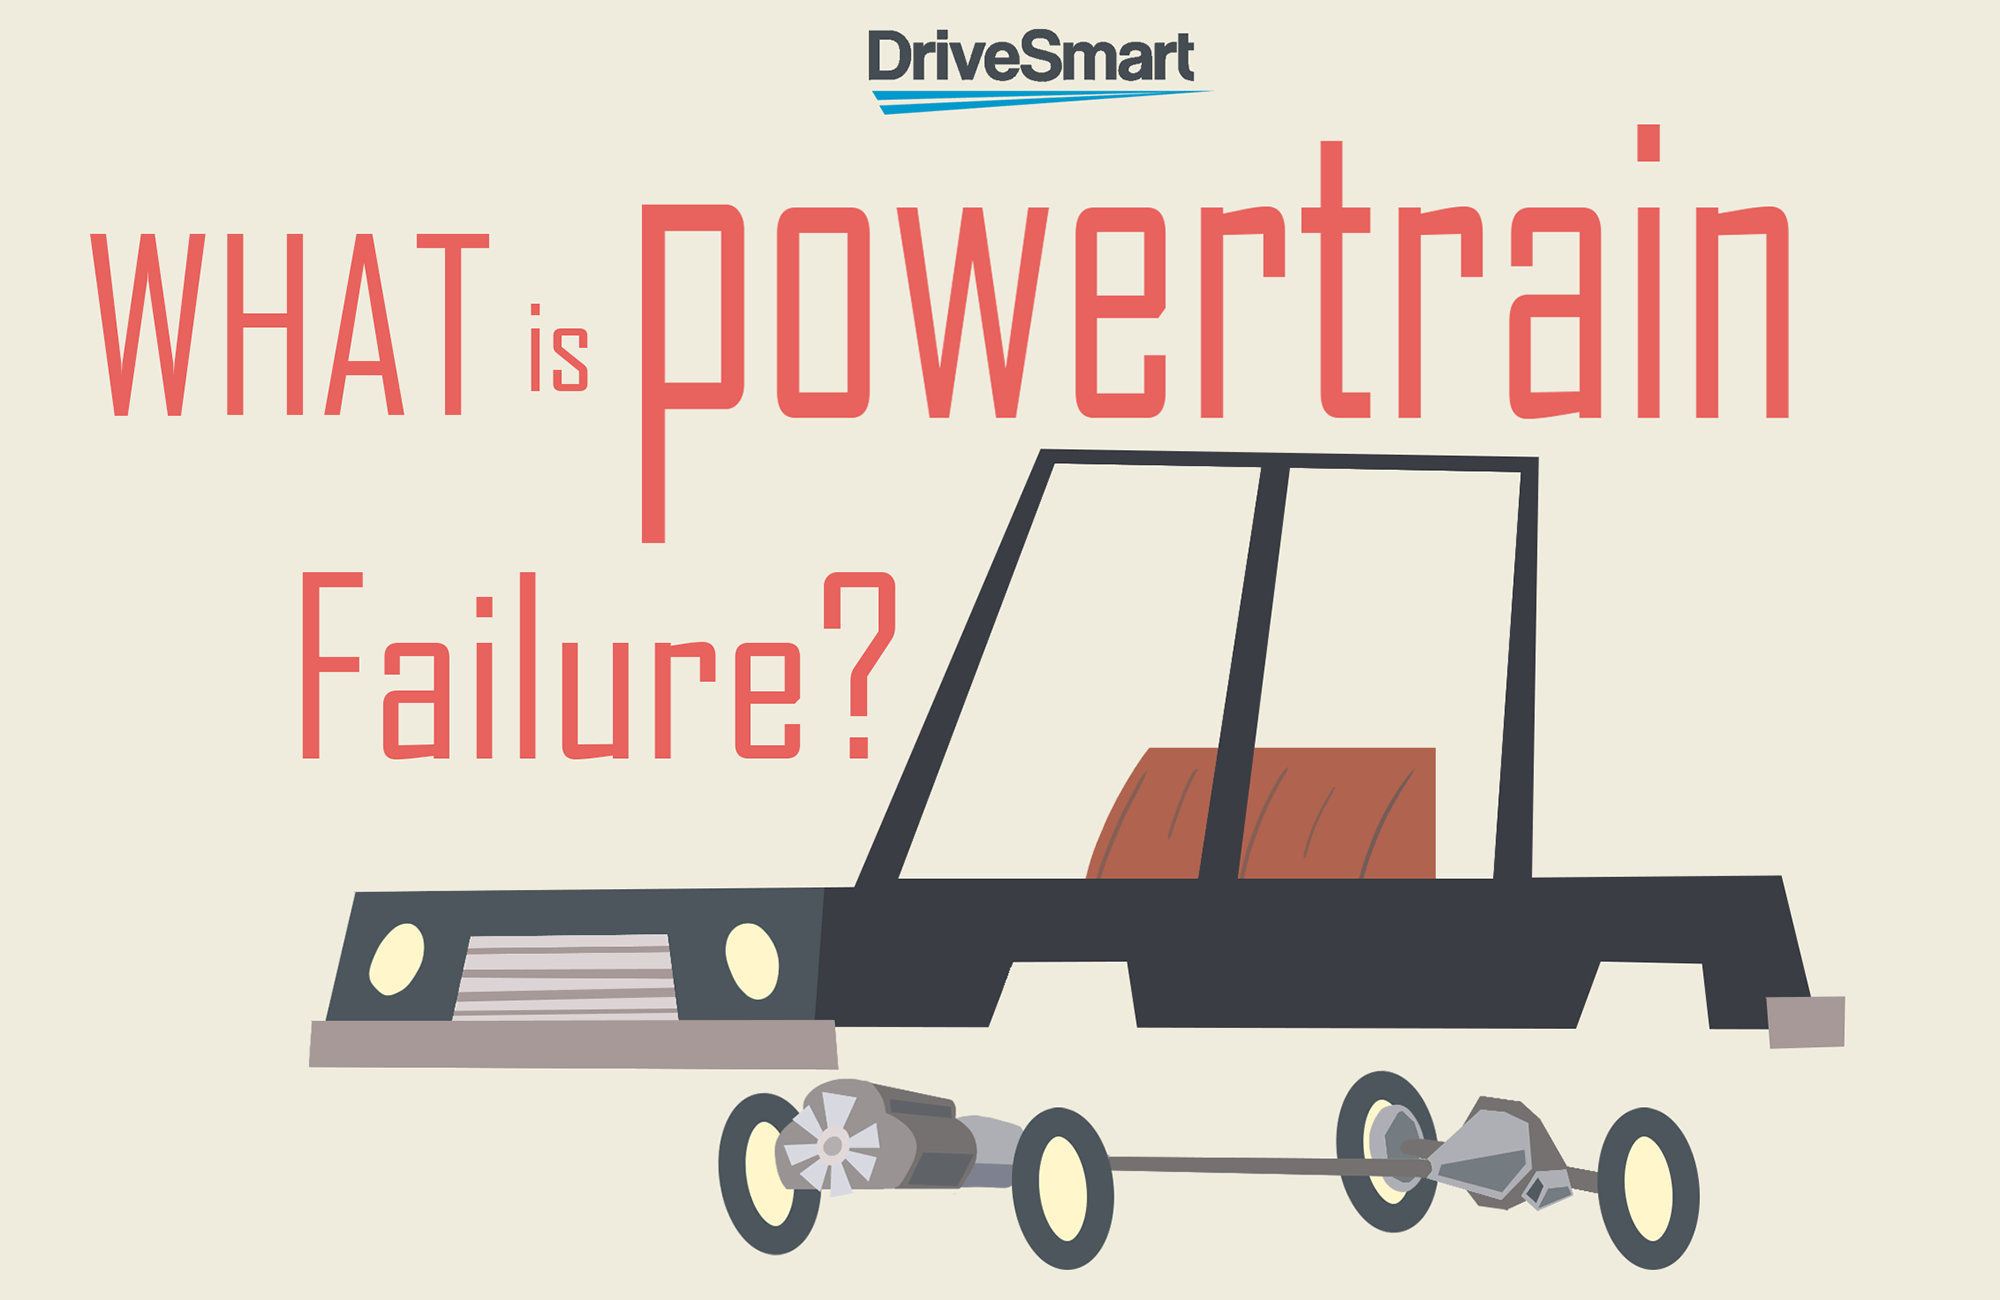 What is Powertrain?